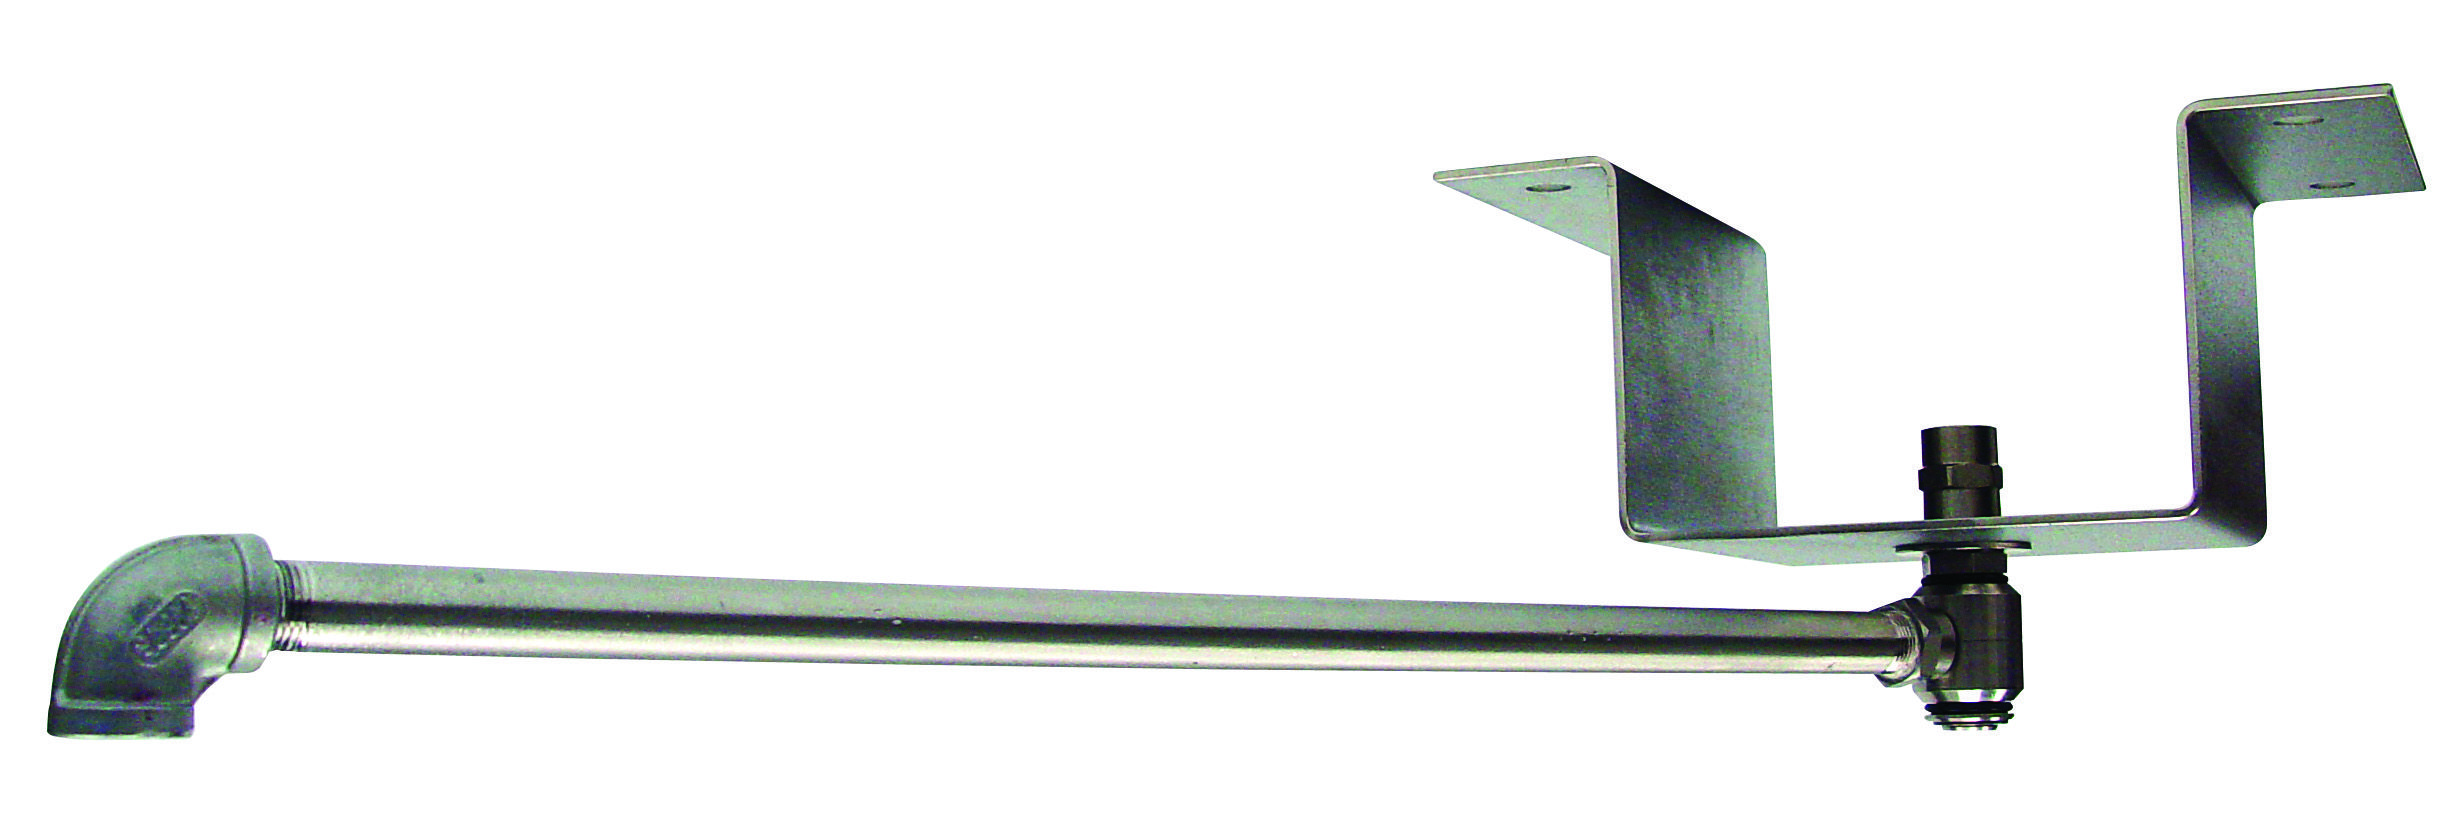 Rotating Overhead Wash Wand From Classic Equine Equipment